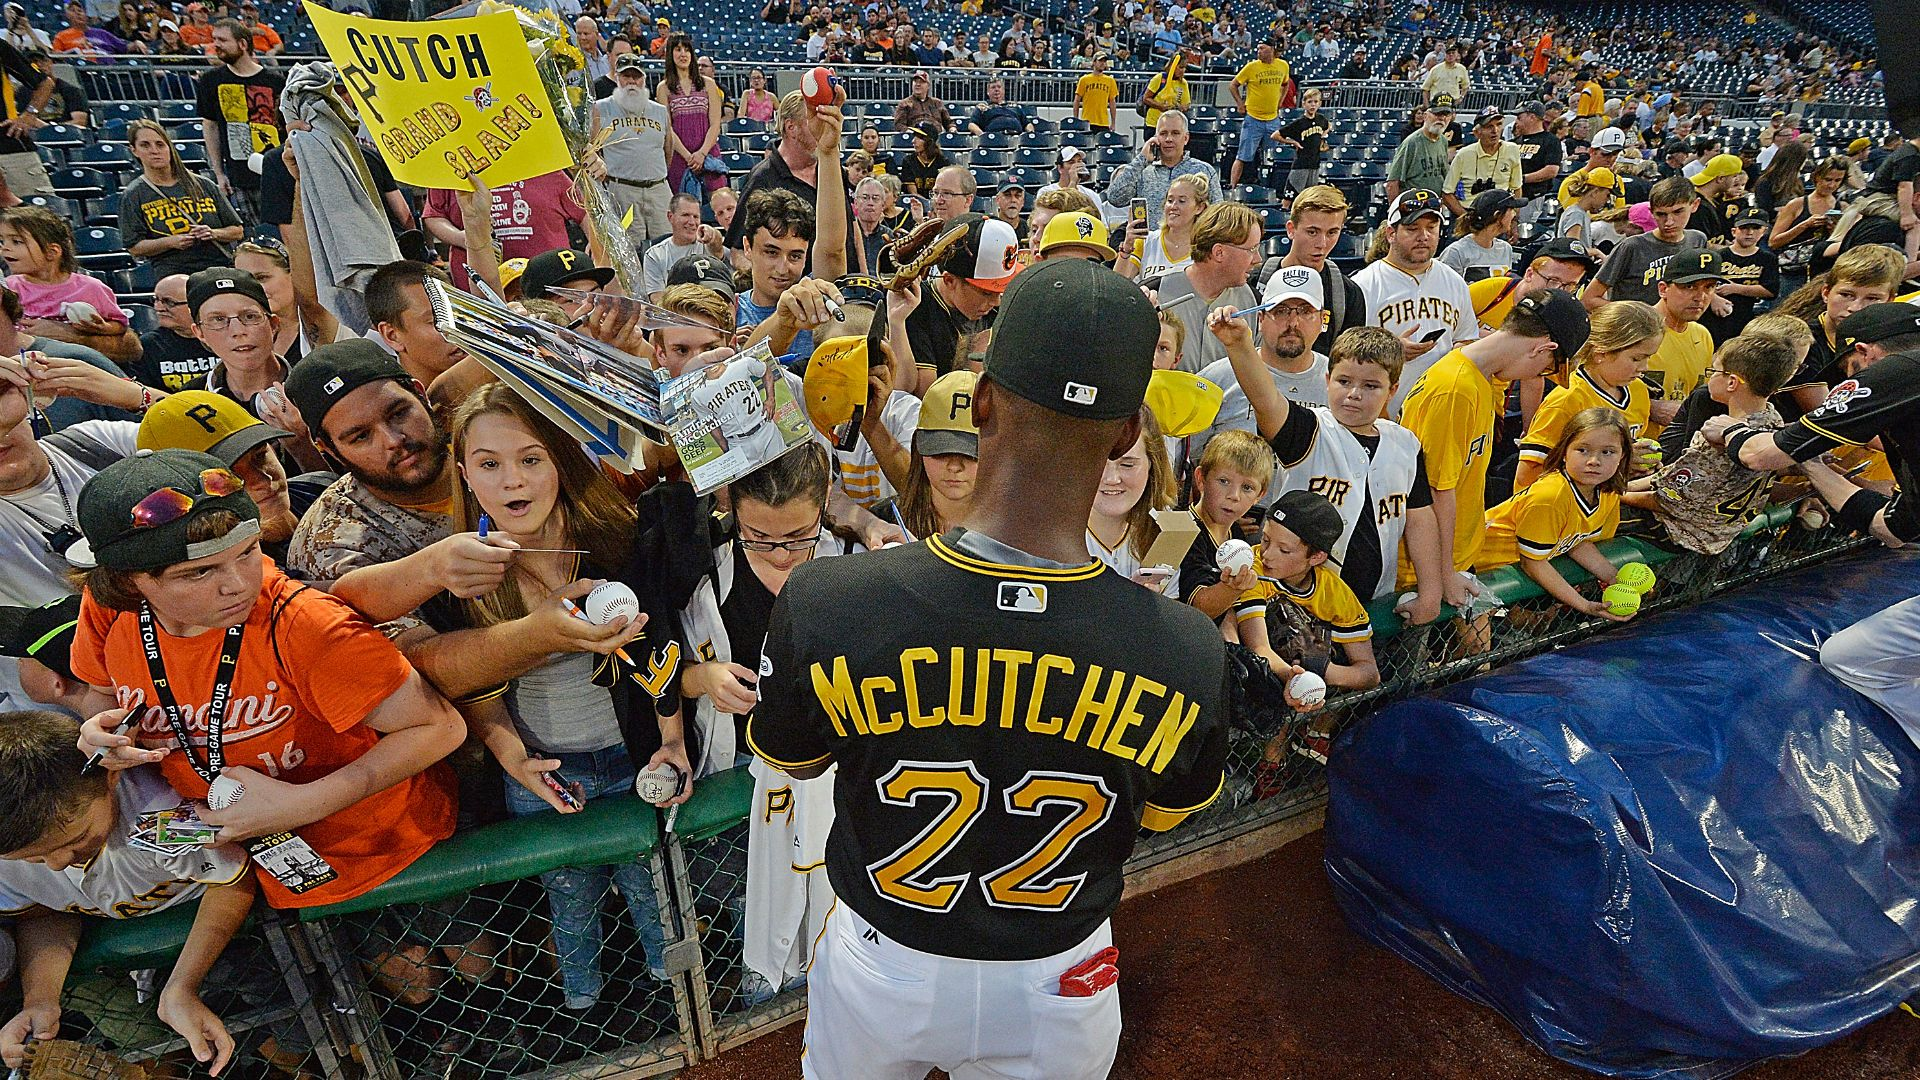 Pirates Fans Start Petition Asking Mlb To Force Owner Bob Nutting To Sell Team Andrew Mccutchen Pirates Fan